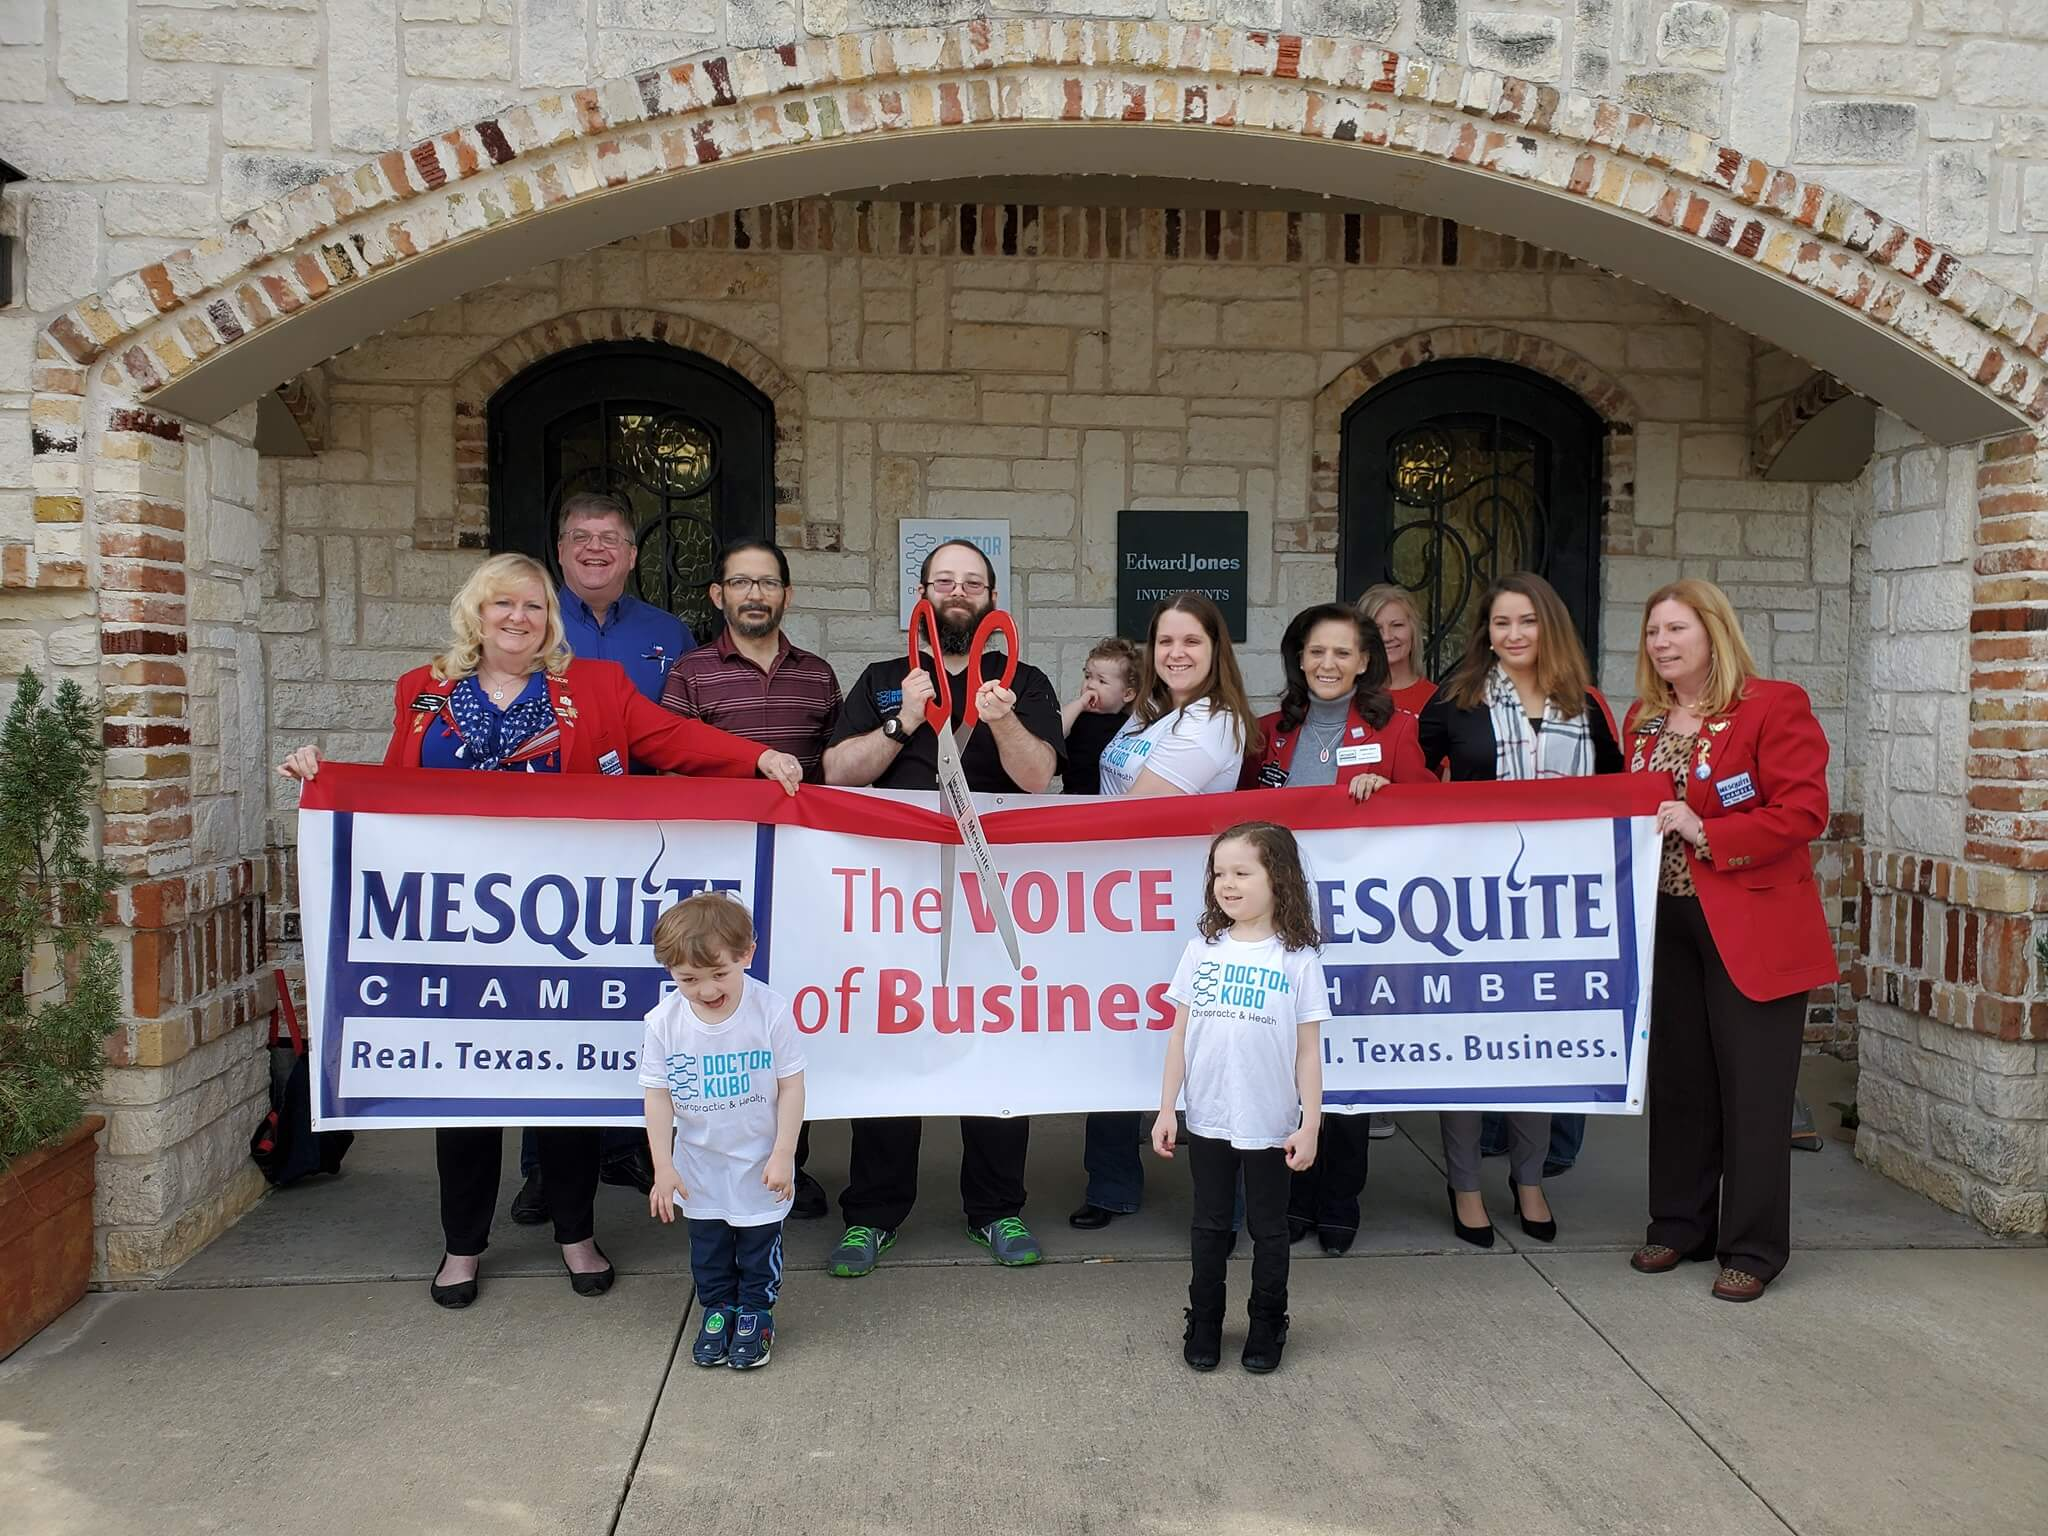 Doctor Kubo joined the Mesquite Chamber of Commerce and had the official ribbon cutting on March 22, 2019.